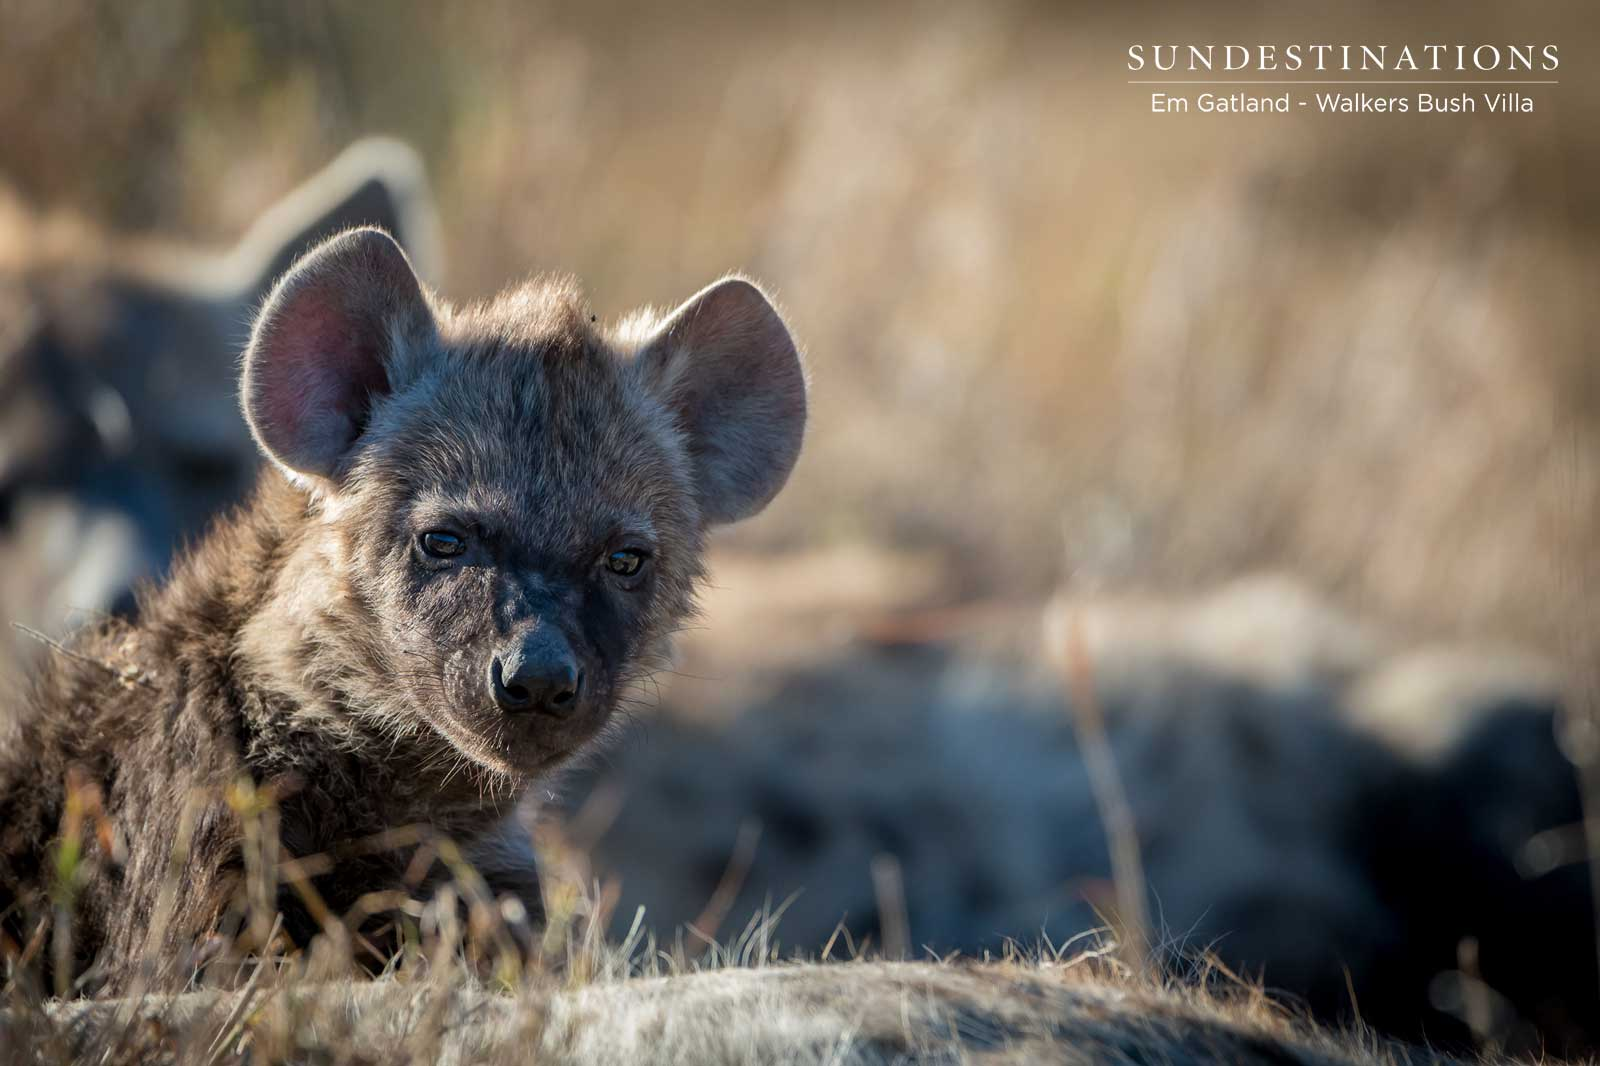 We Found Cute Hyena Cubs While on Drive with Walkers Bush Villa